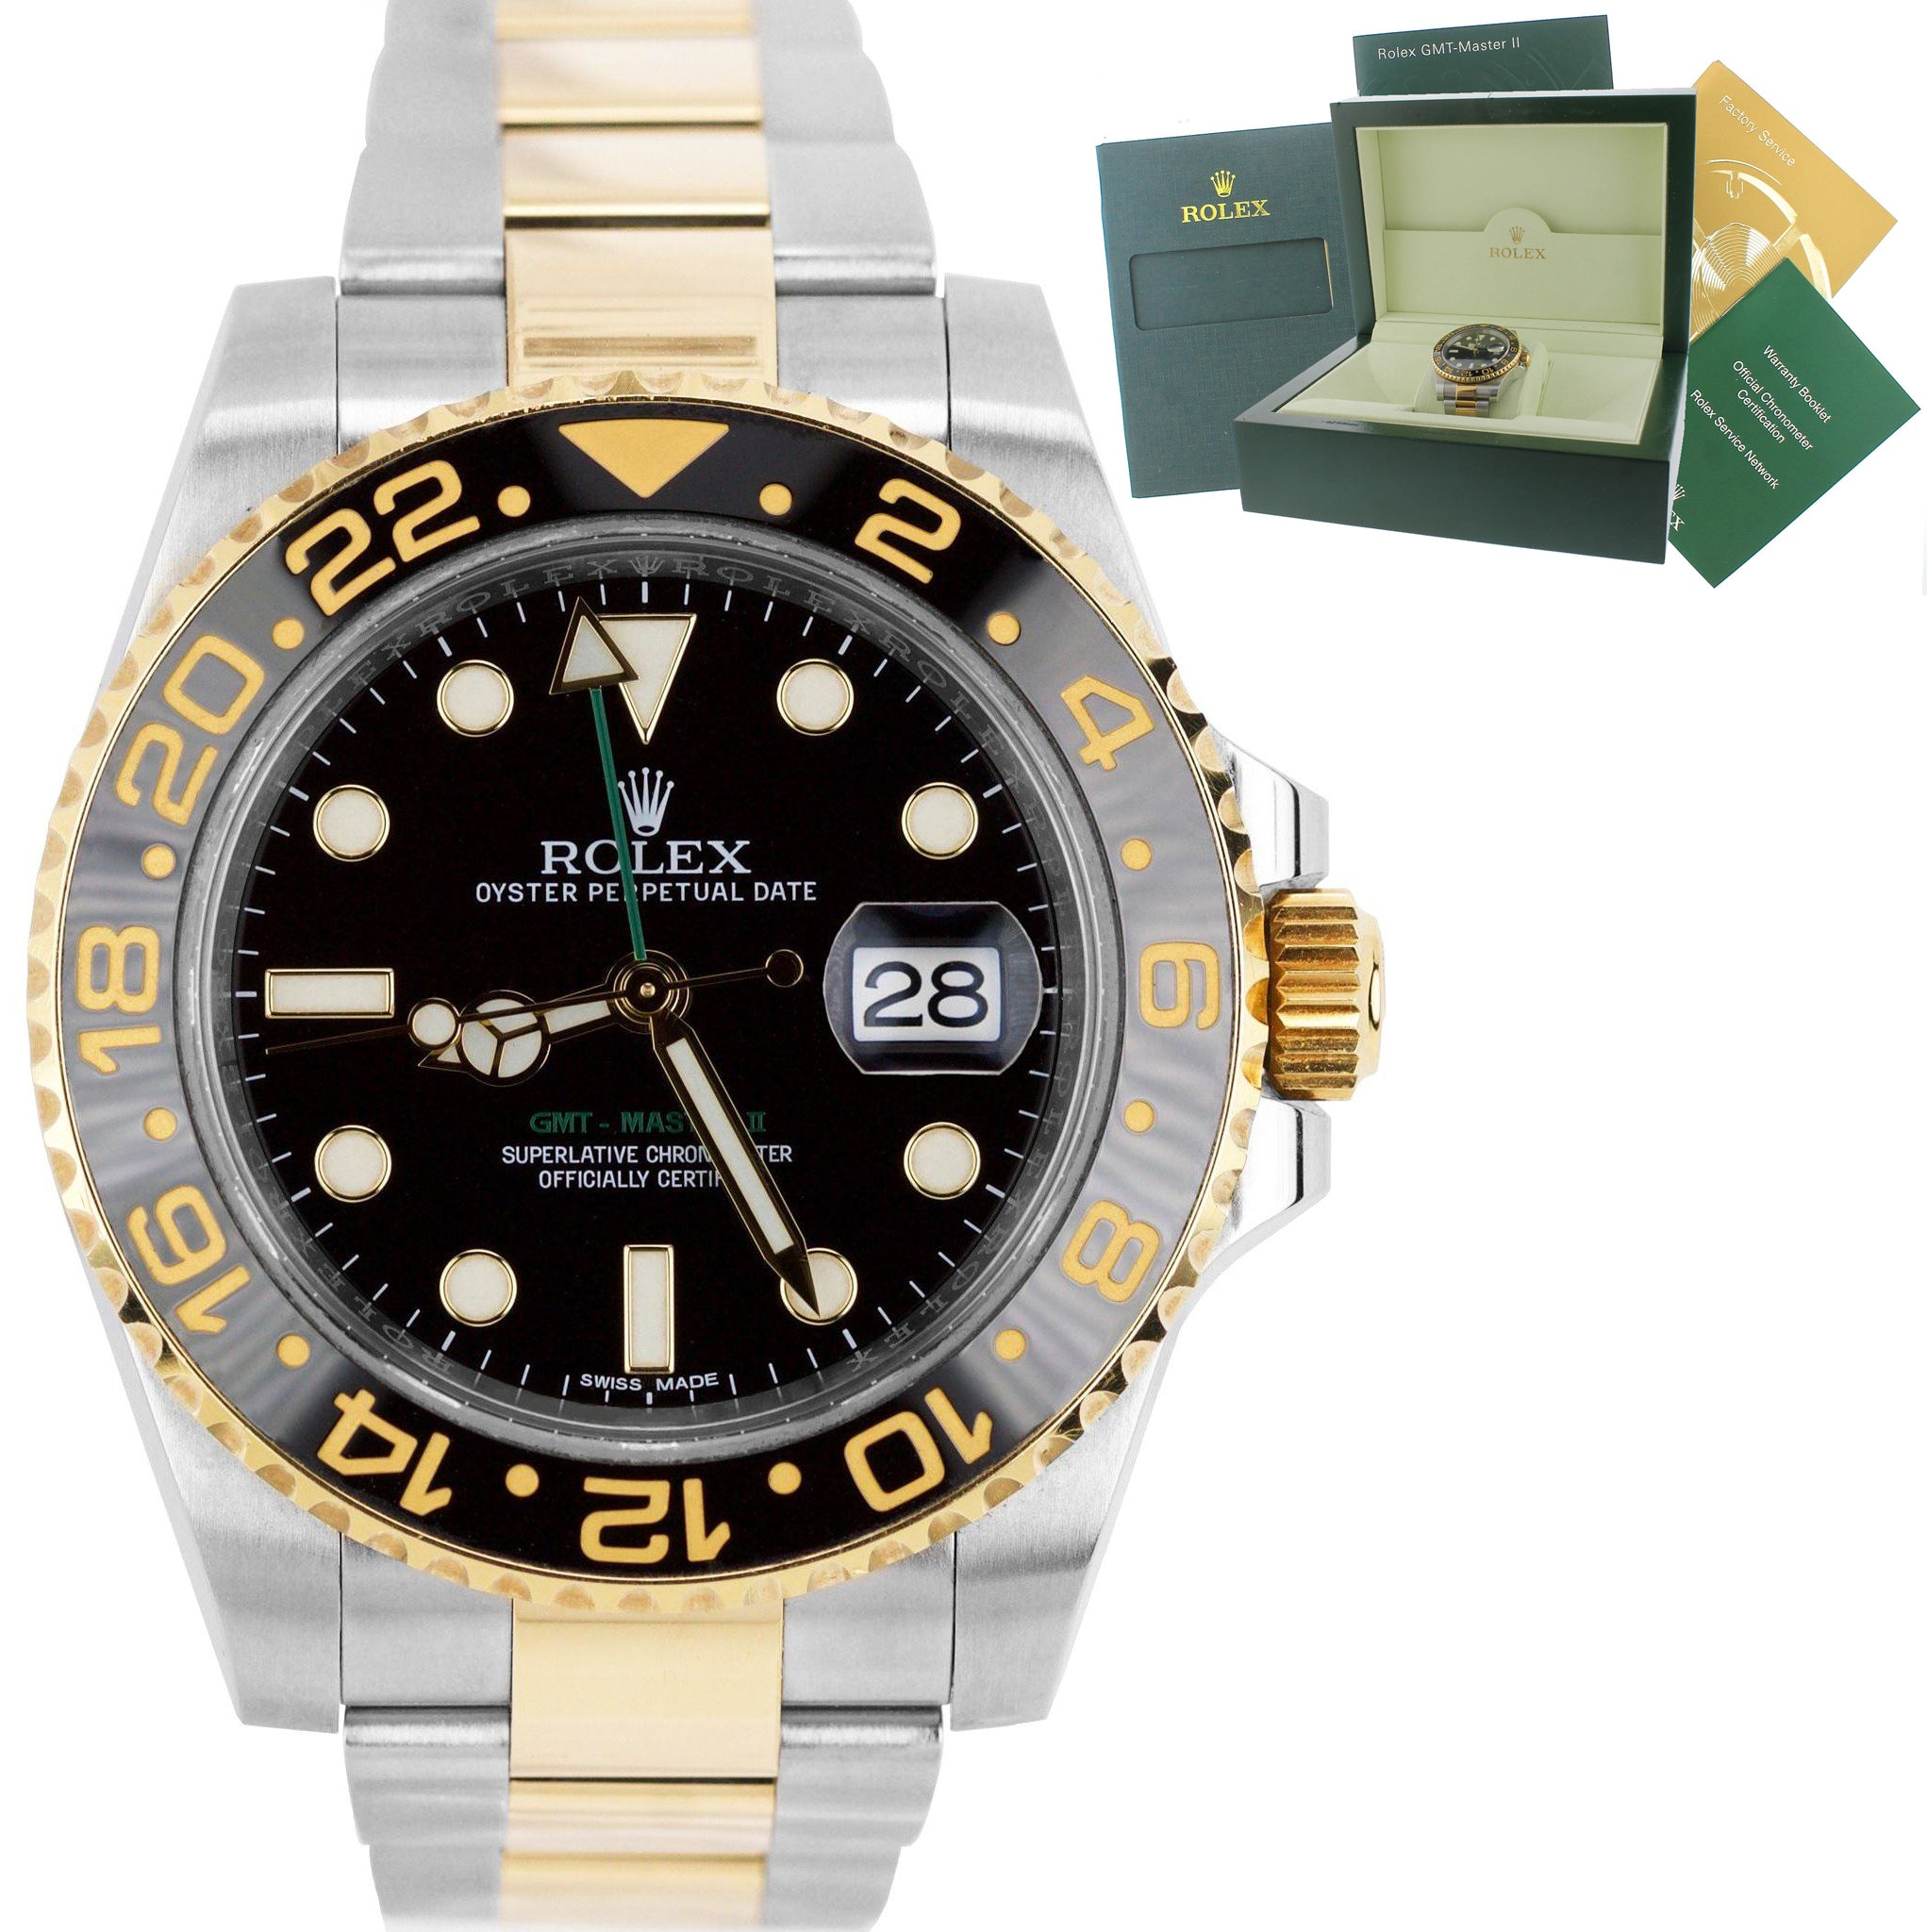 2017 Rolex Gmt Master Ii Ceramic 116713 Black Two Tone Stainless